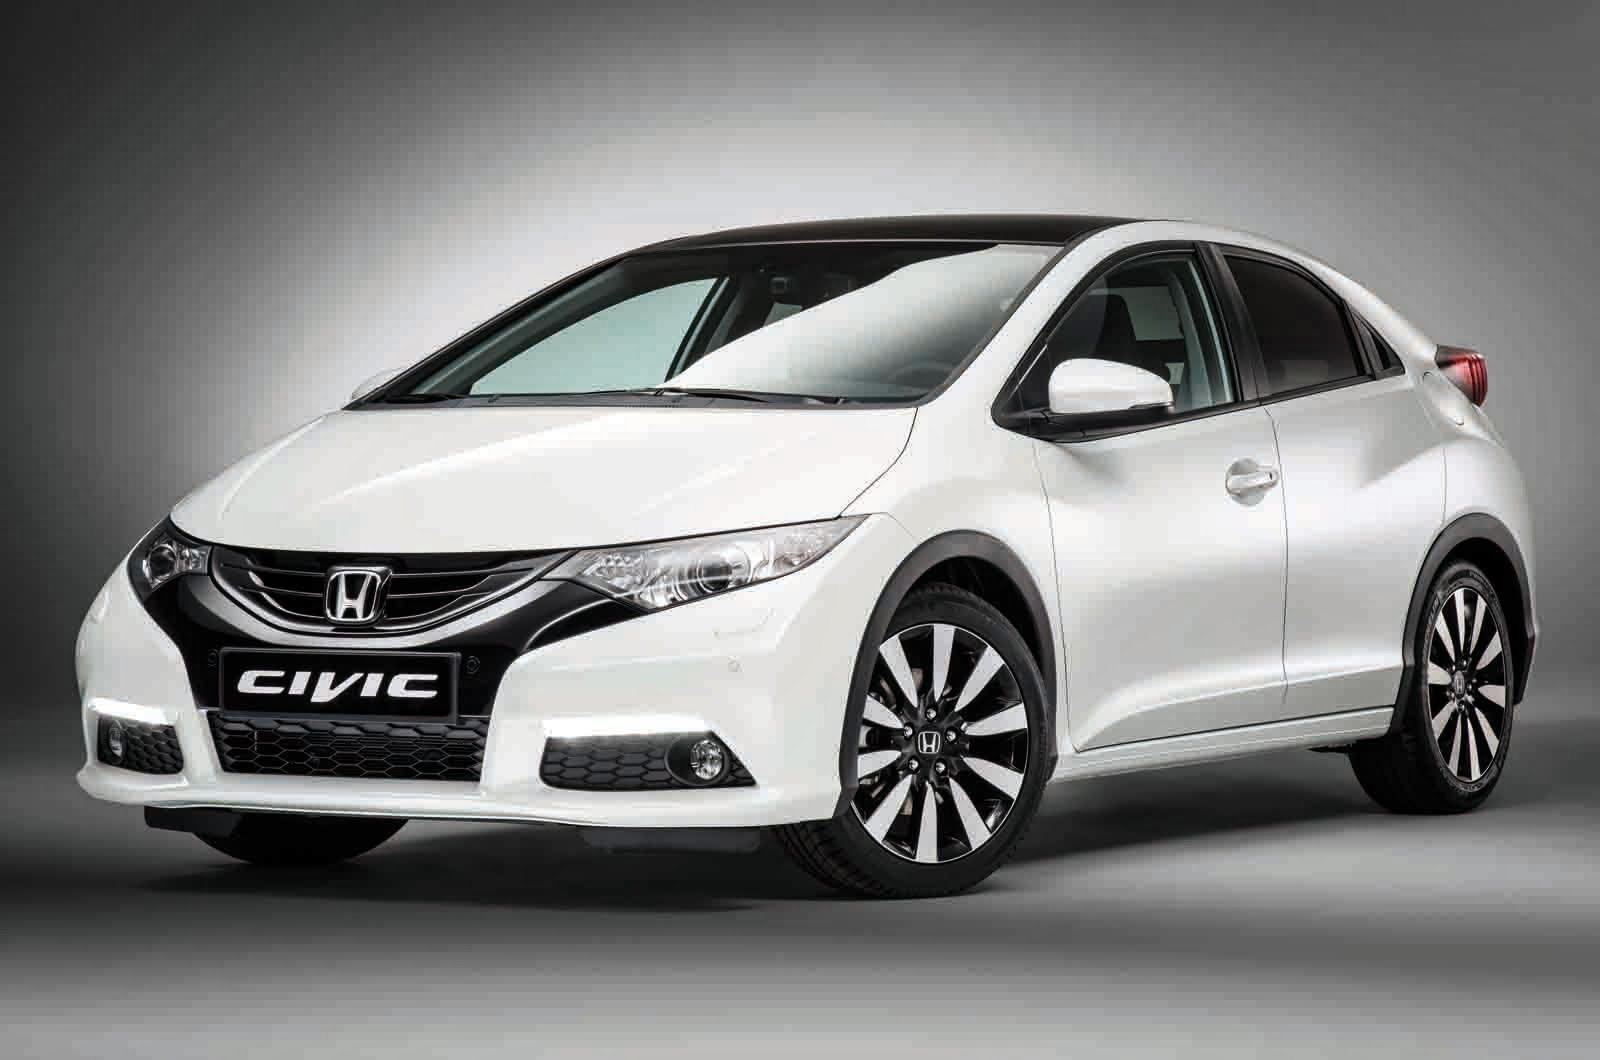 New One Hundred Cars New Car Honda Civic 2014 On This Month